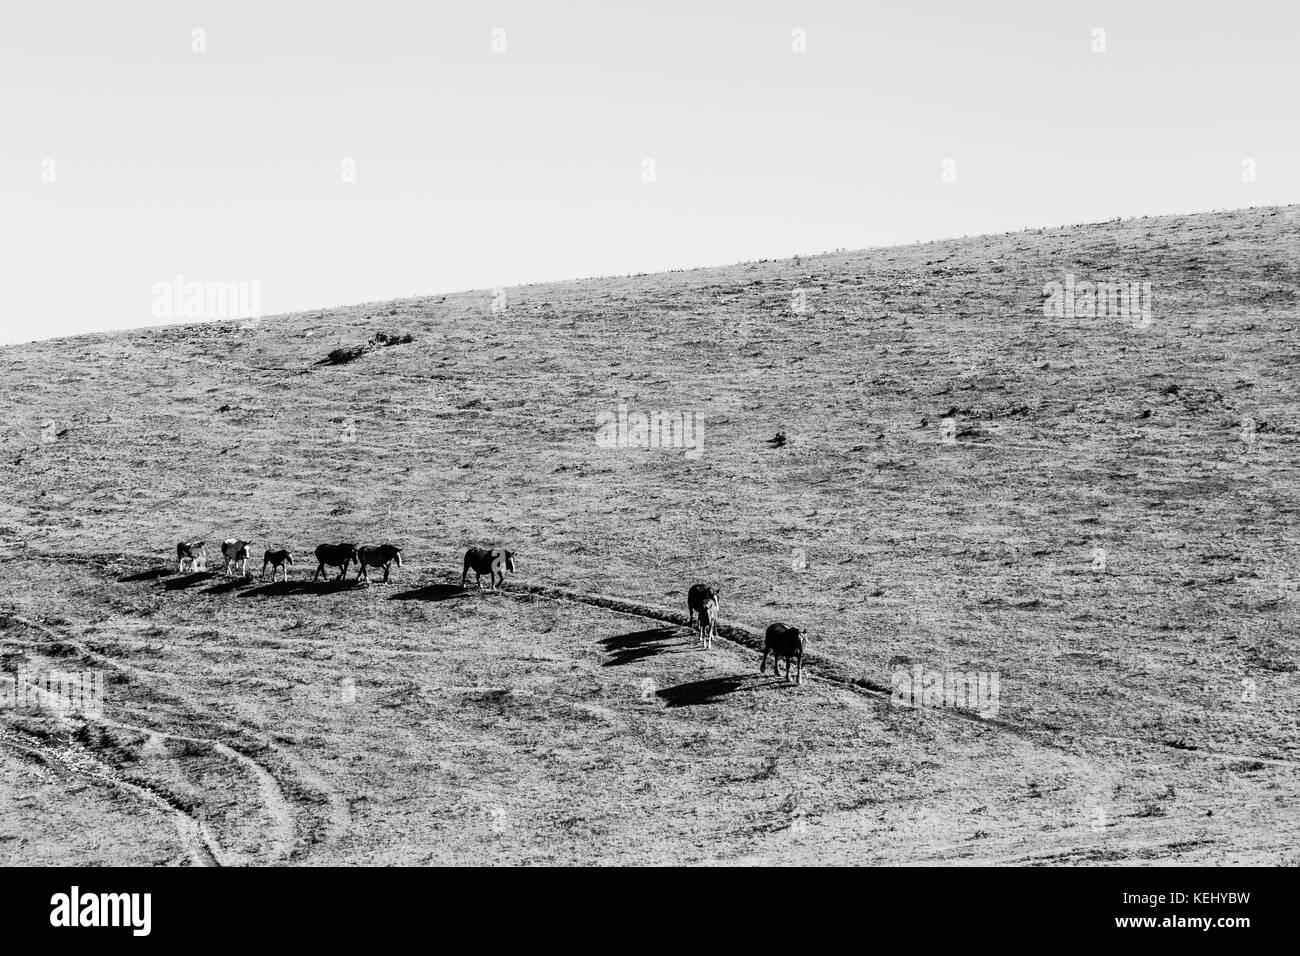 A line of horses walking on the side of a mountain in a dry, hot day, beneath a totally empty sky - Stock Image